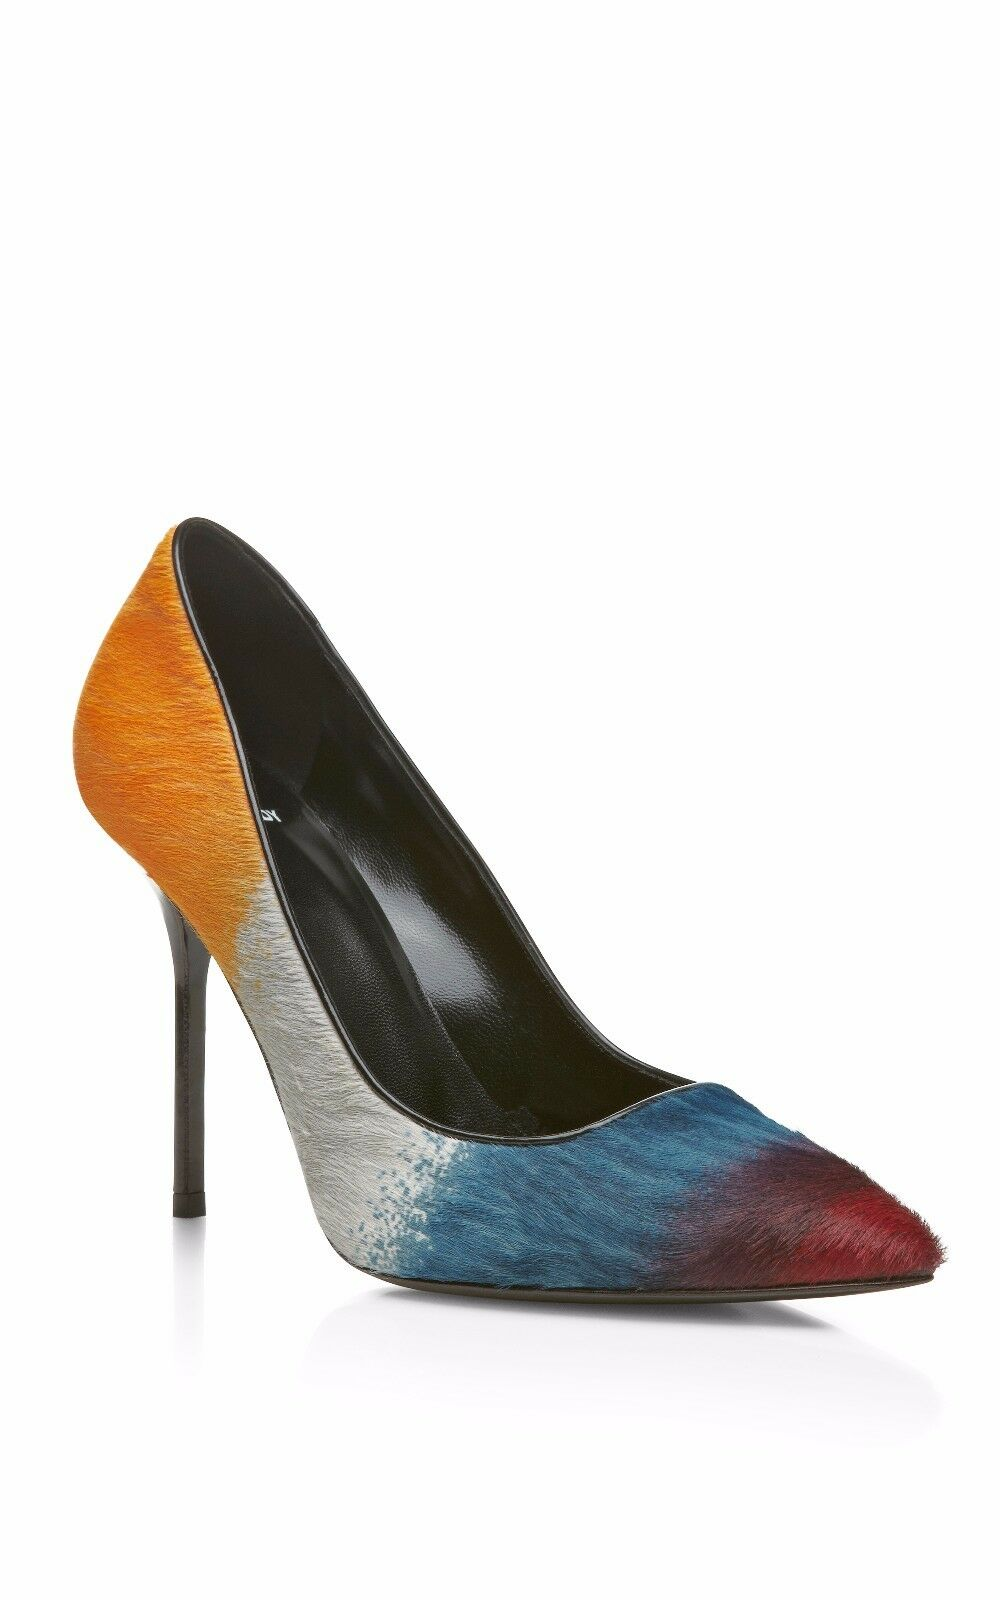 Pierre Hardy Multi Coloreeosso Hairy Calf e Shiny Calf Pump   si affrettò a vedere